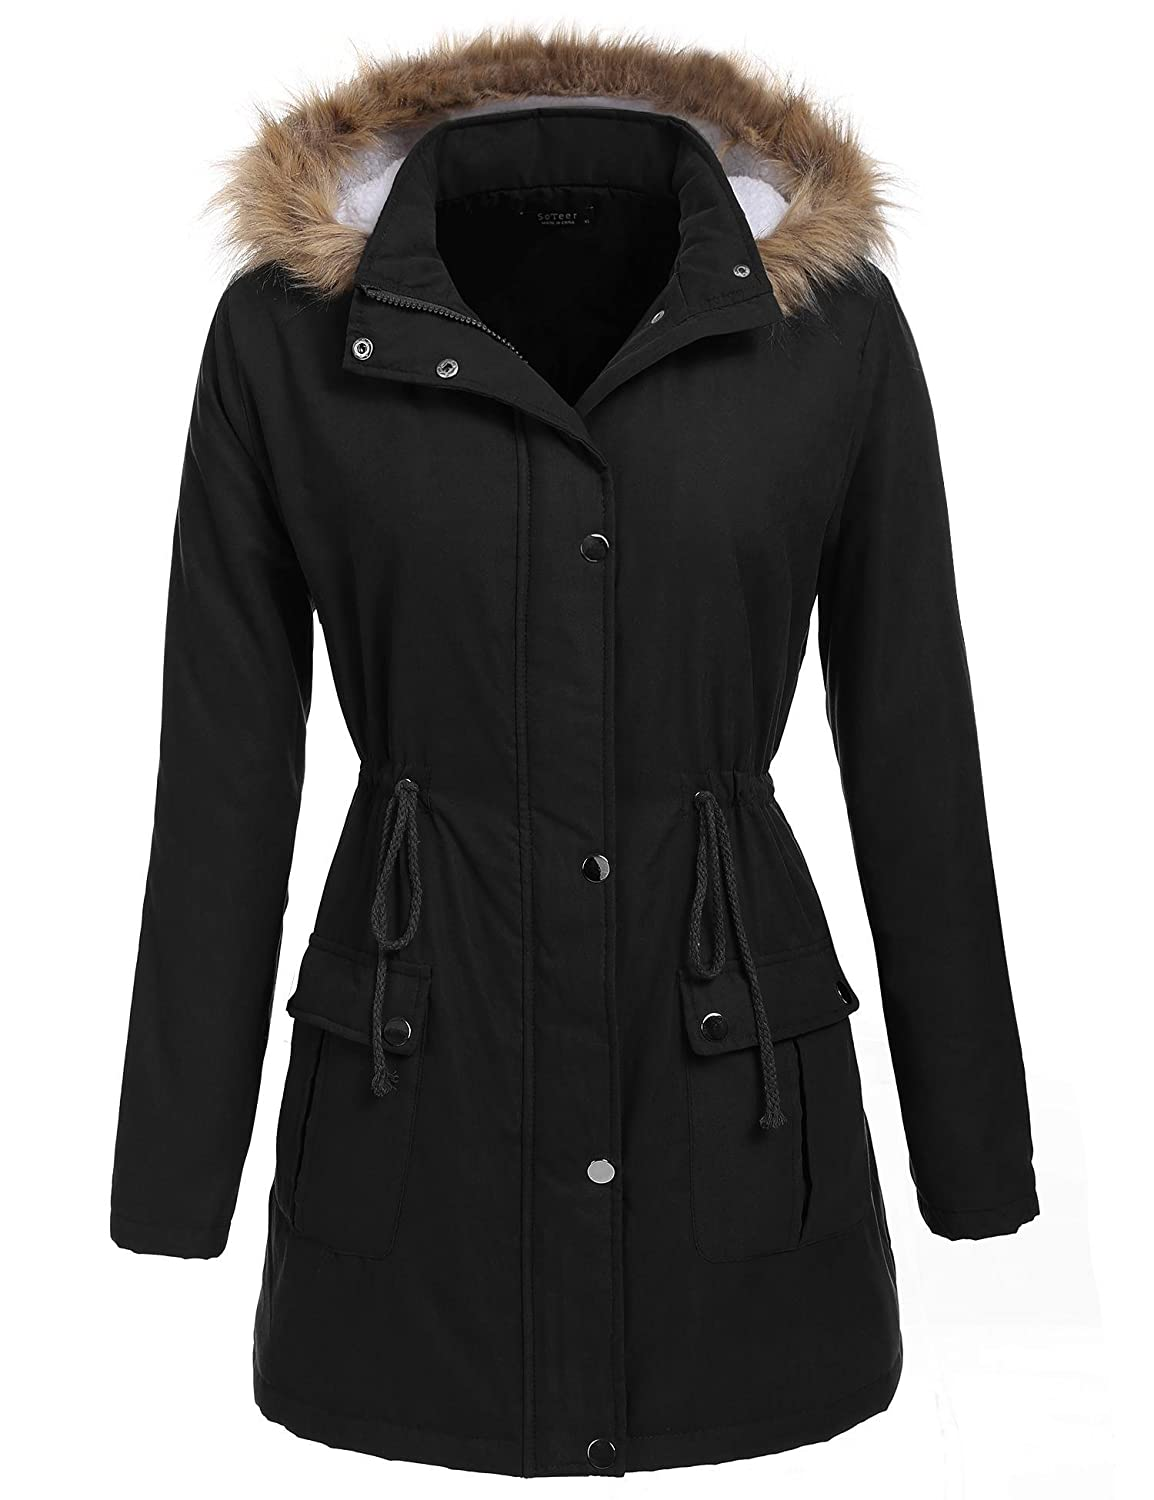 Chigant Damen Winter Steppjacke Wintermantel mit Kapuze Trenchcoat Windmantel Funktionsmantel Parka Outdoorjacke